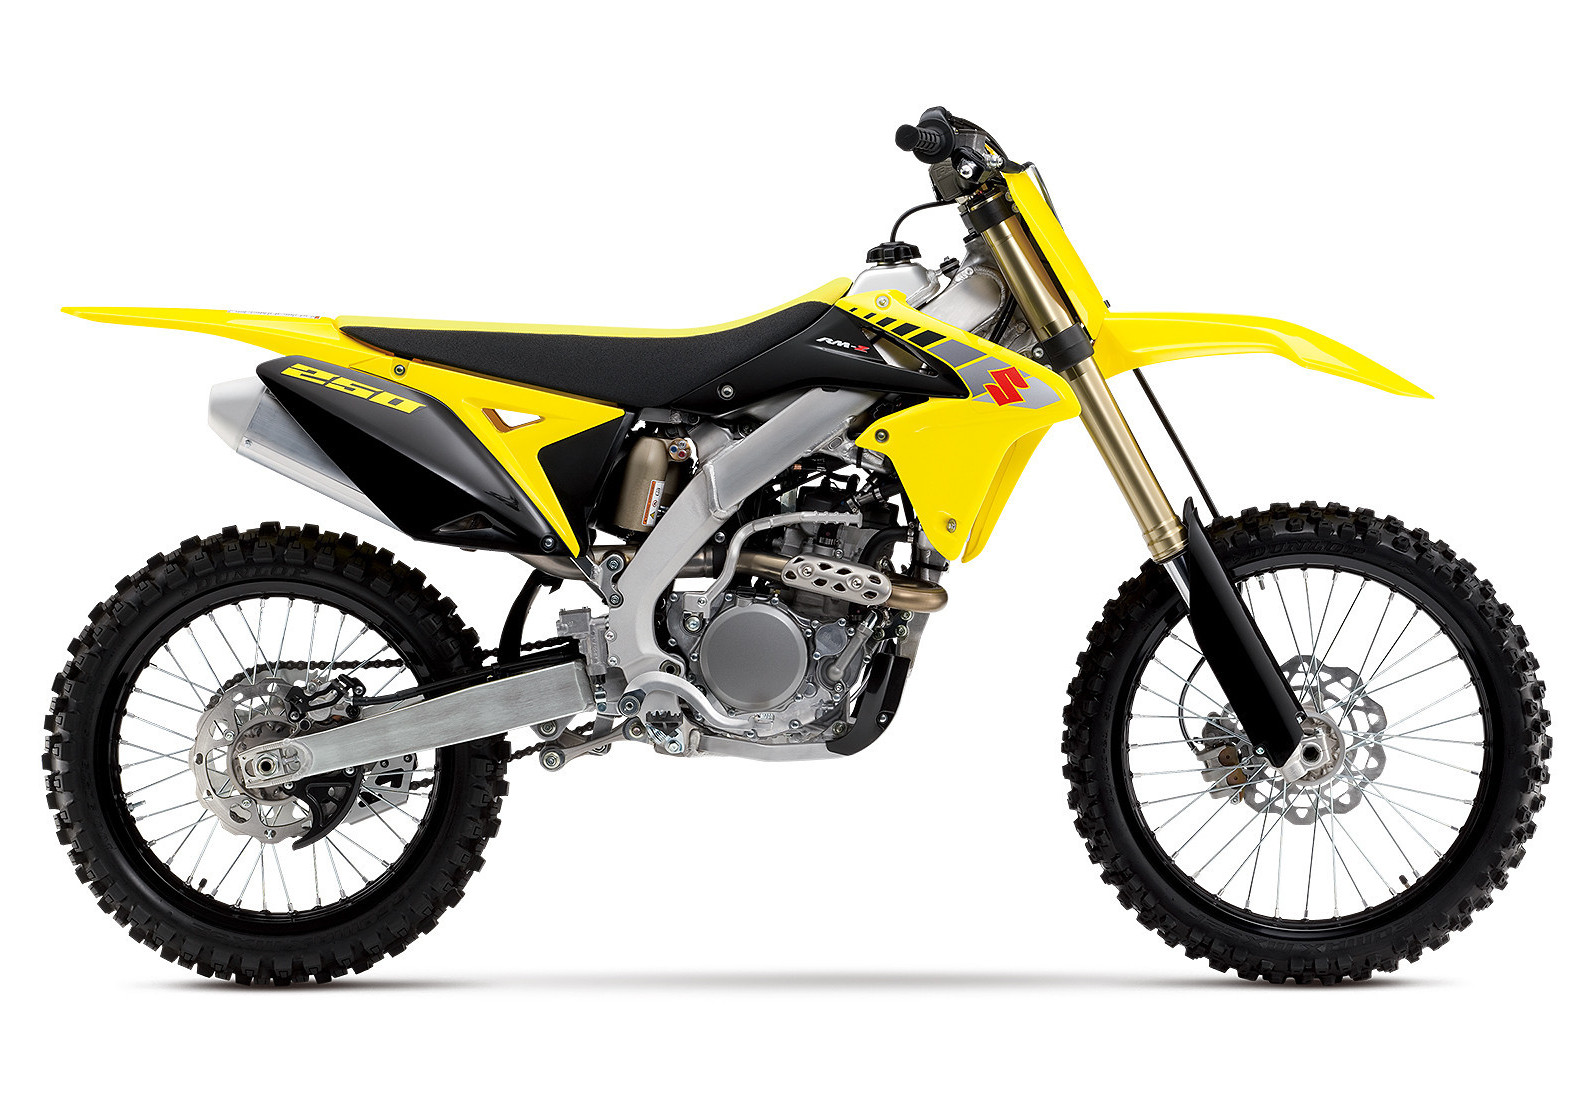 2017 suzuki rm z250 reviews comparisons specs. Black Bedroom Furniture Sets. Home Design Ideas